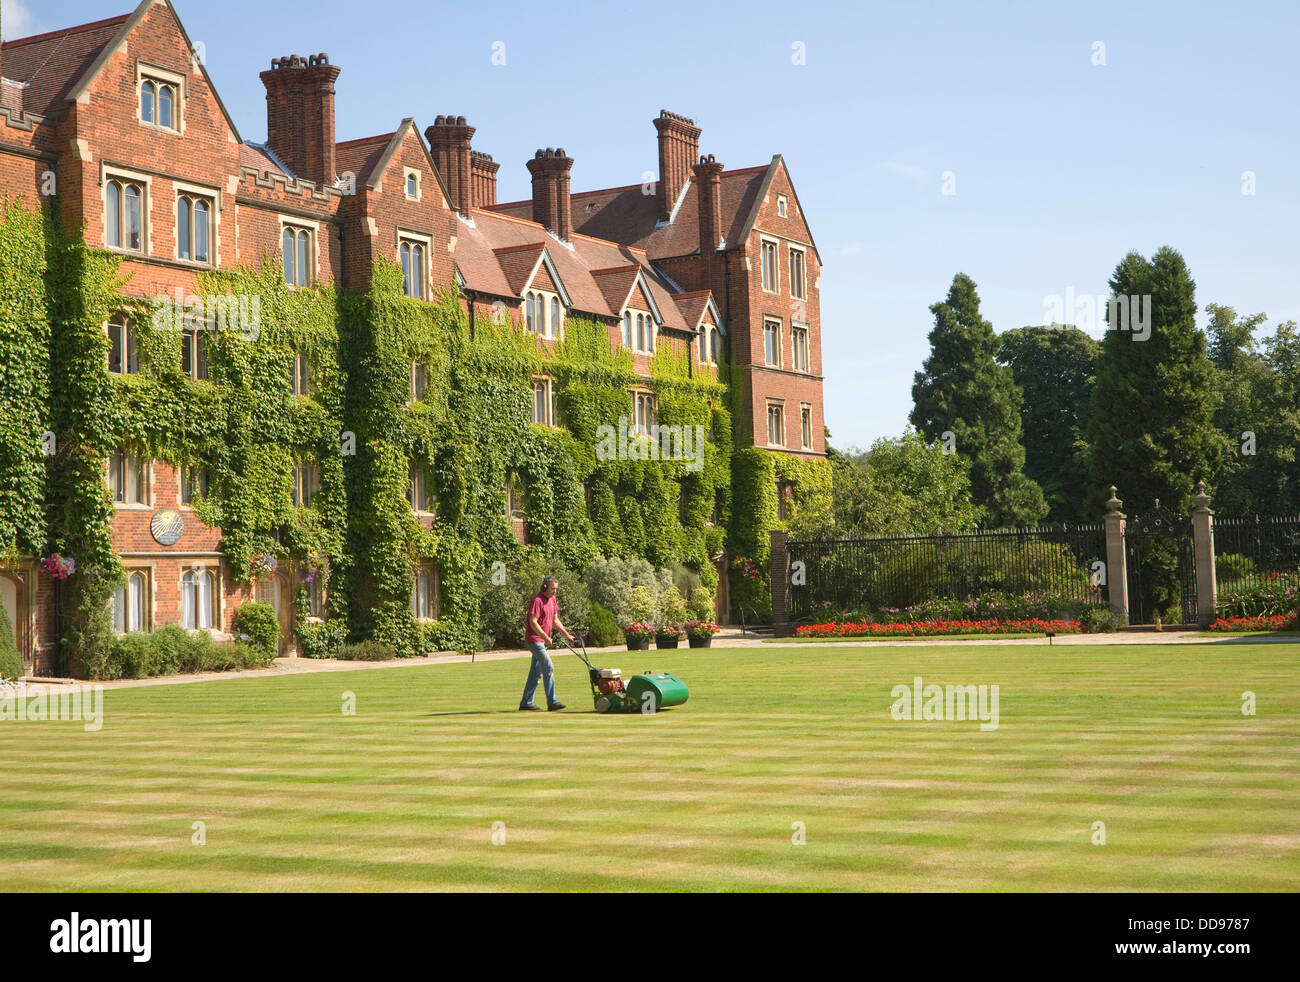 Man mowing lawn Old Court Selwyn College University of Cambridge England - Stock Image